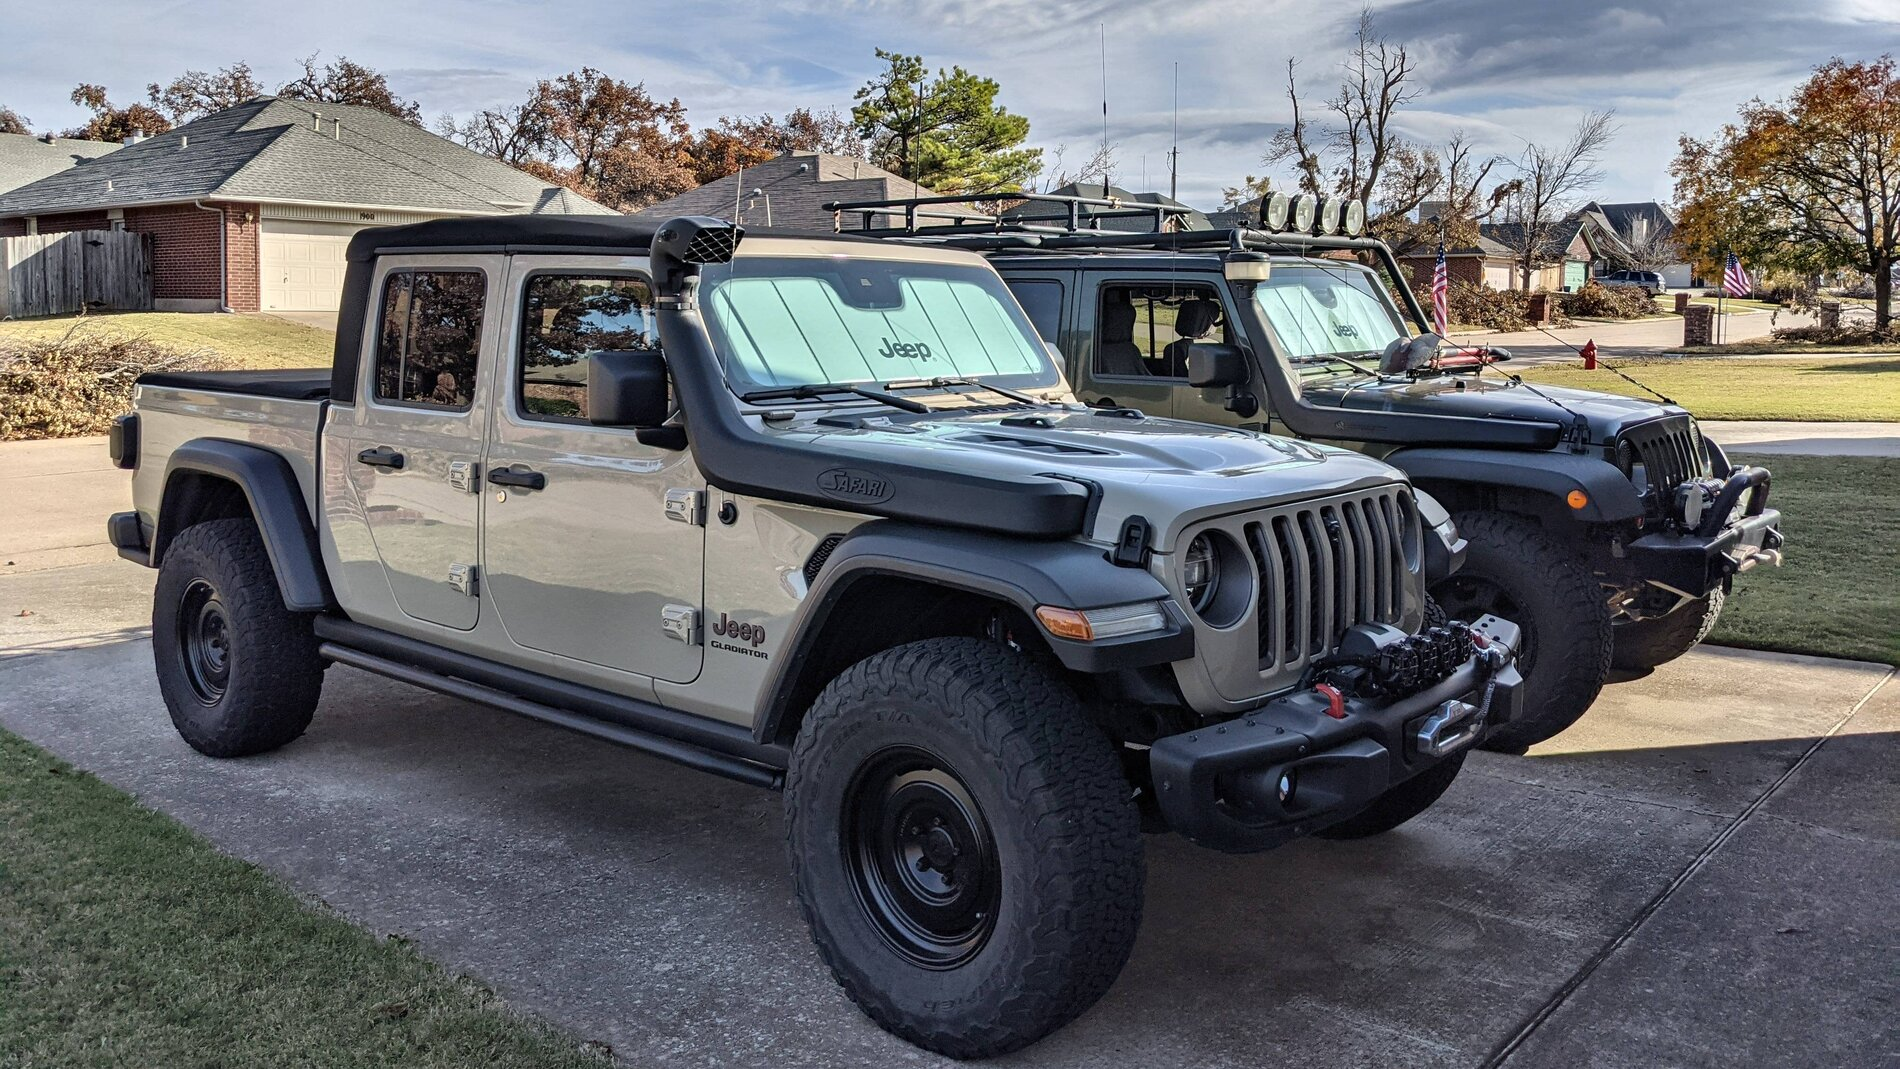 Driveway Poseur Shots, Nov 20, CP_954538, Jeeps and Clouds.jpg